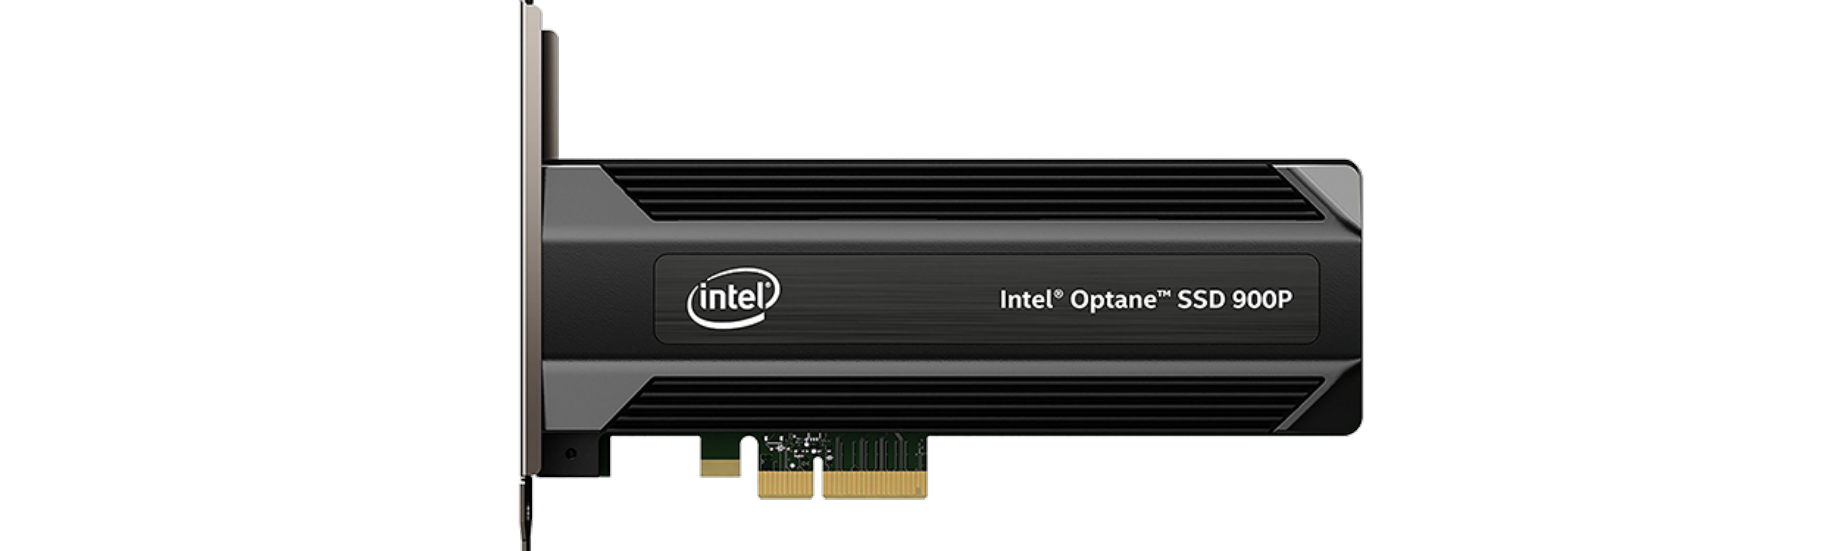 Intel Optane Memory What Is It And Why Do You Need It